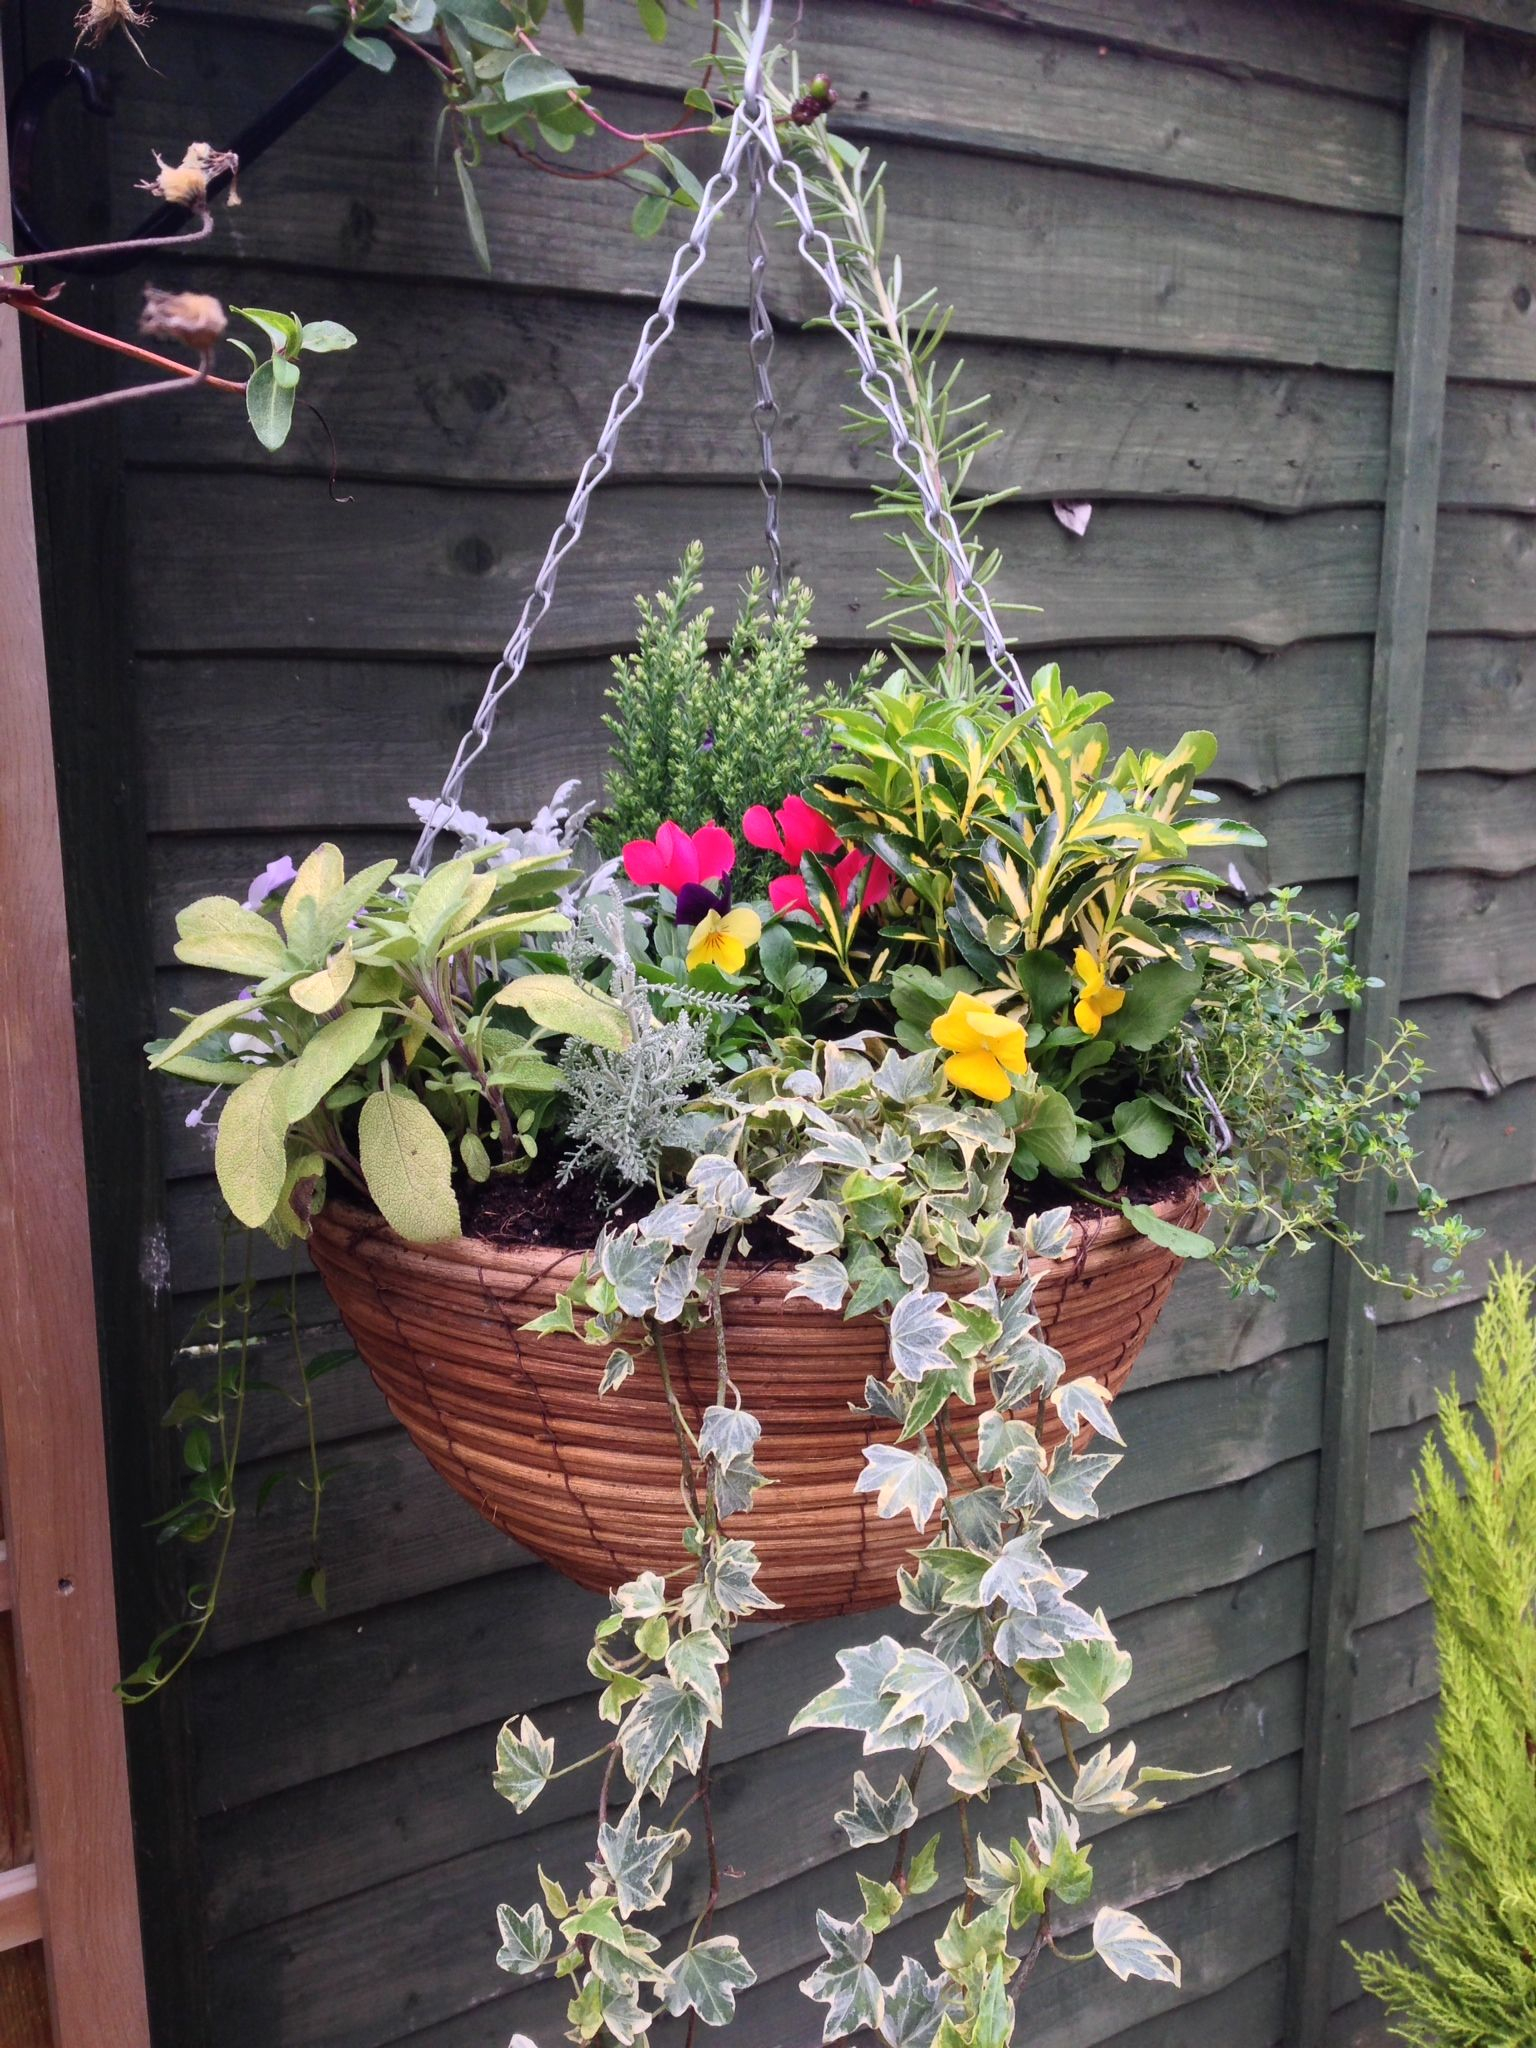 Autumn Winter Hanging Basket Saffron Walden Garden Center Displays Centre Christmas Baskets